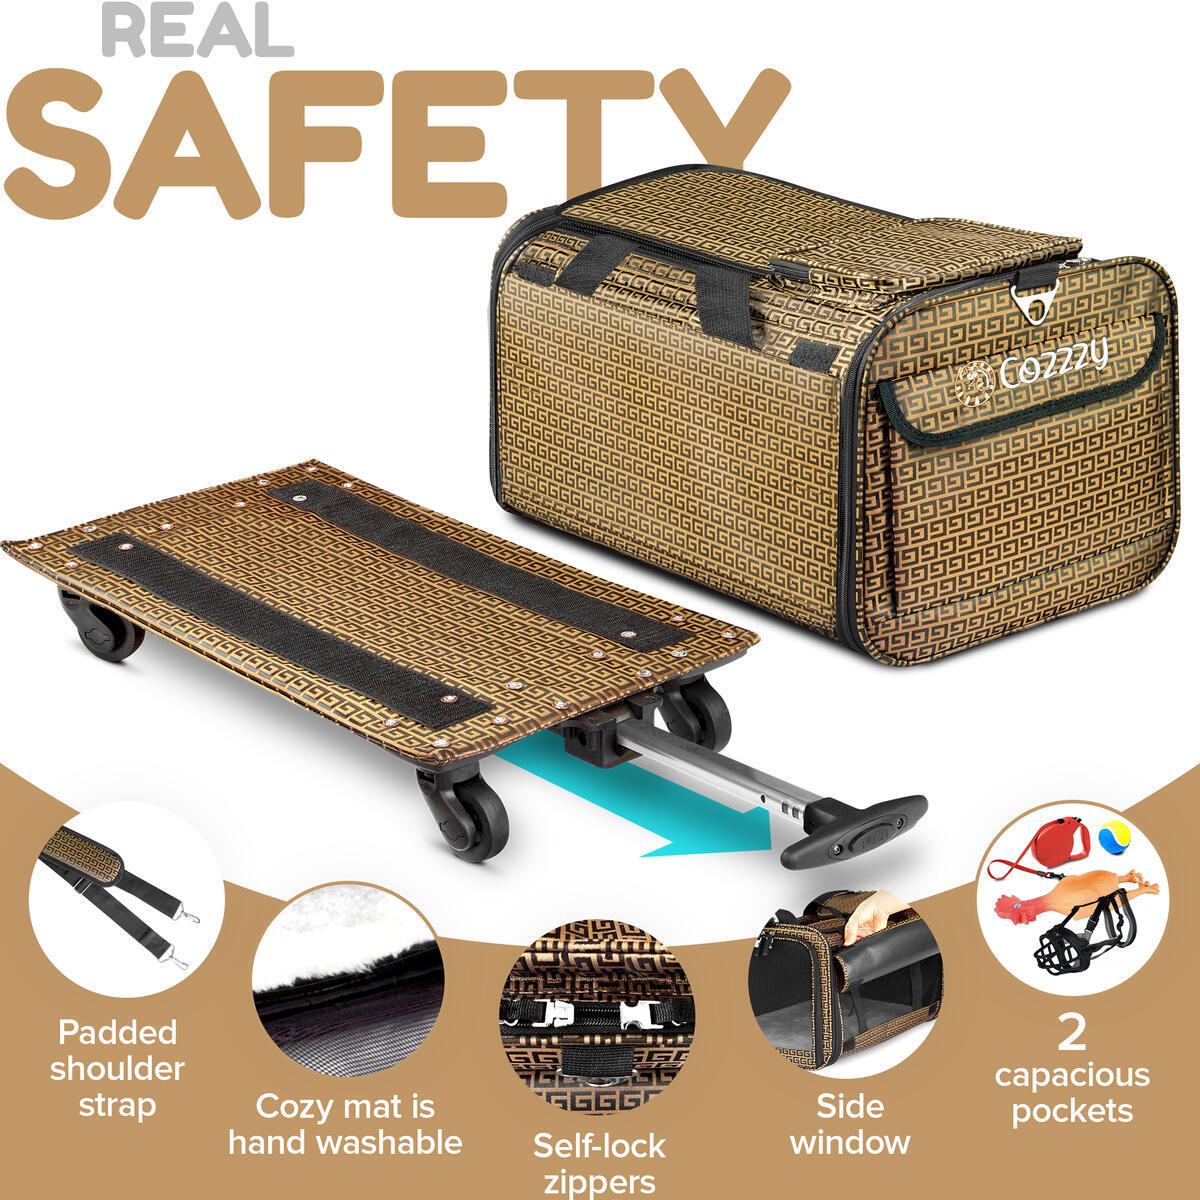 Cozzzy Airline Approved Pet Carrier BROWN-LARGE-WITH-WHELS 19.6 in 11.8 in 11.8 in, Soft Sided for Small Dogs, Medium Cats Other Small Pets